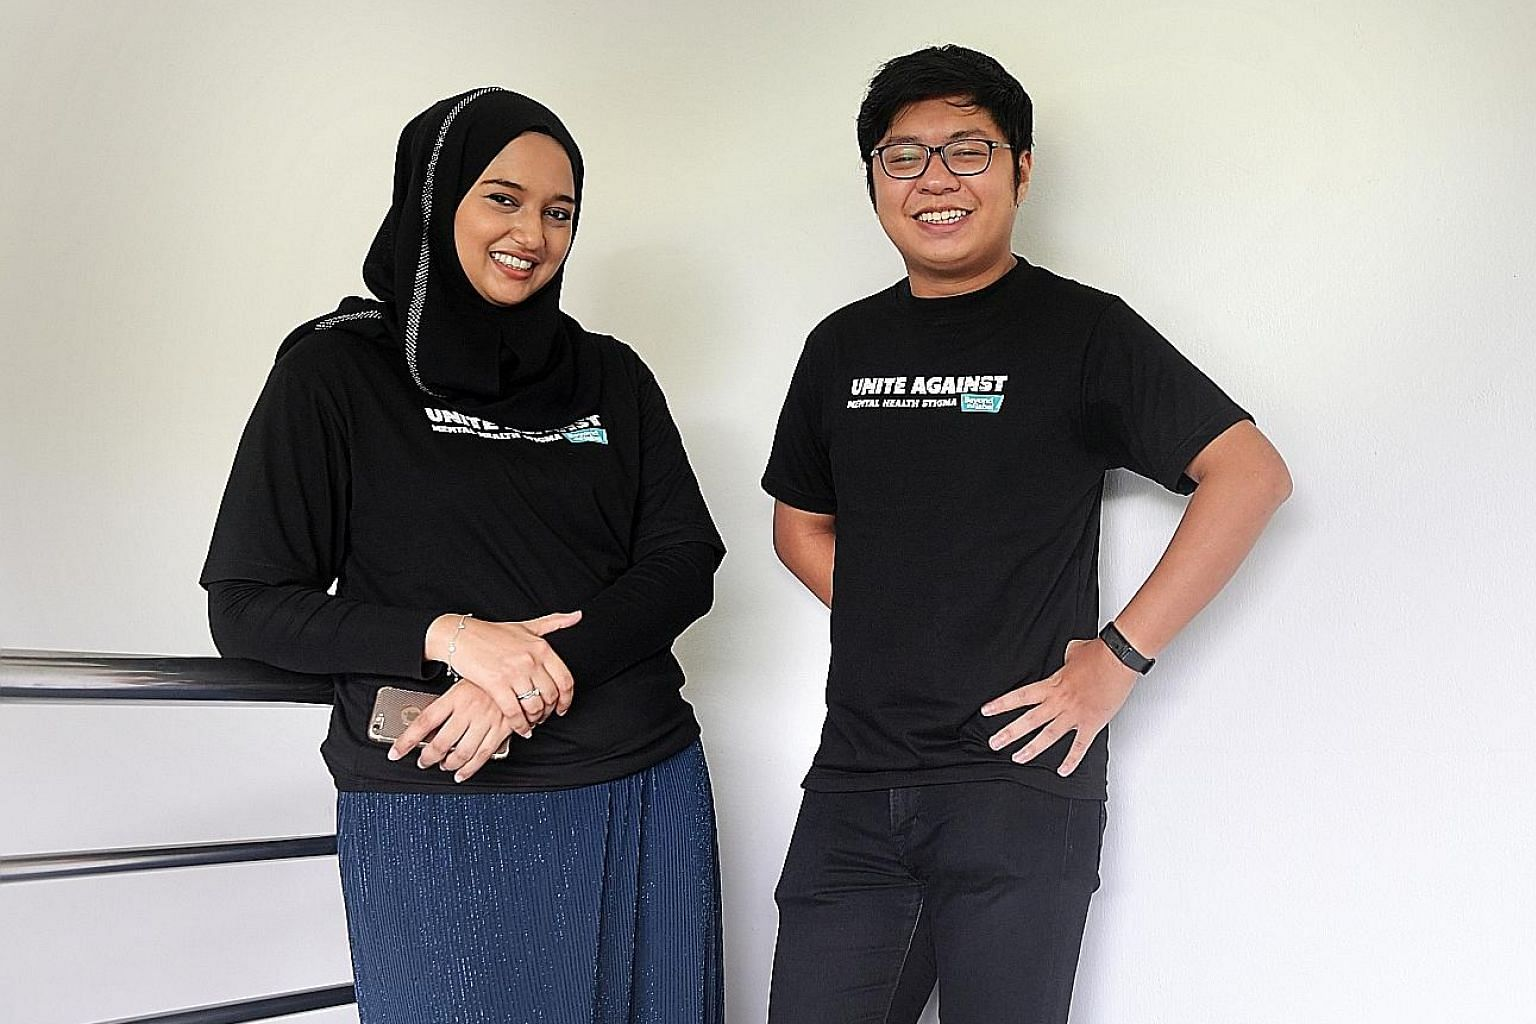 Ms Sumaiyah Mohamed and Mr Desmond Ng are well on their road to recovery, thanks to peer support. They are now envoys for the Beyond The Label campaign.